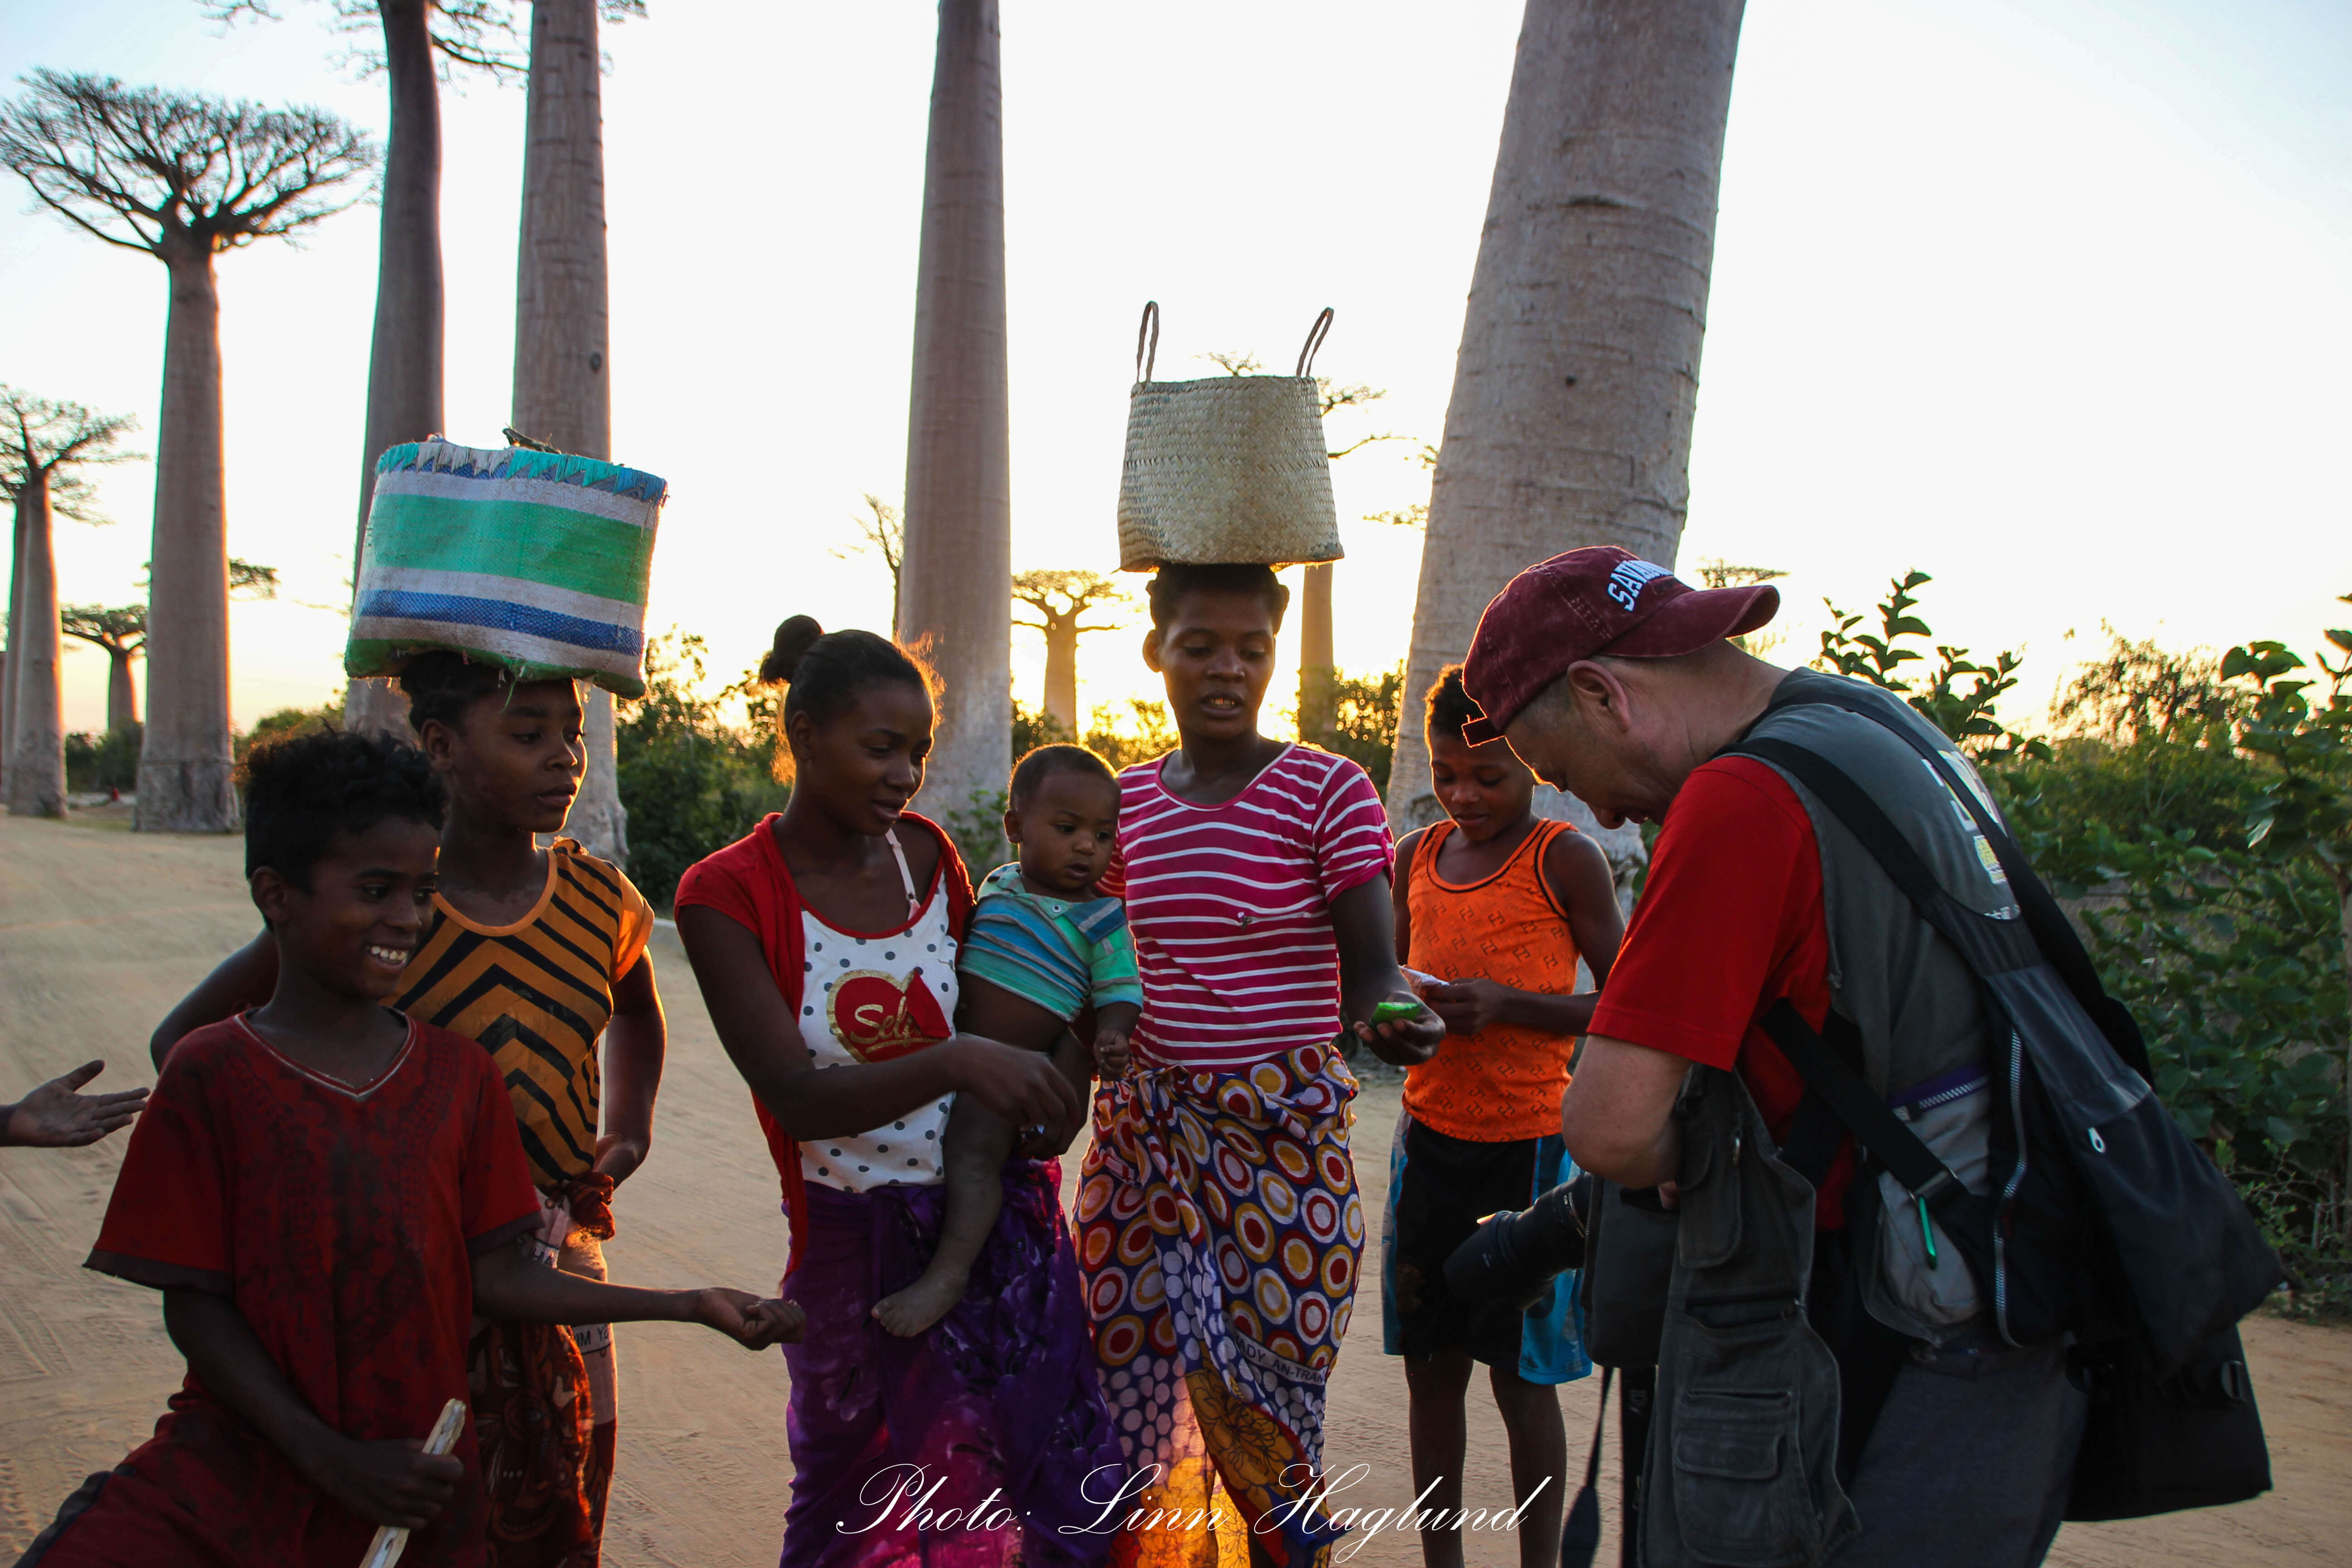 Tourist giving gifts to Malagasys